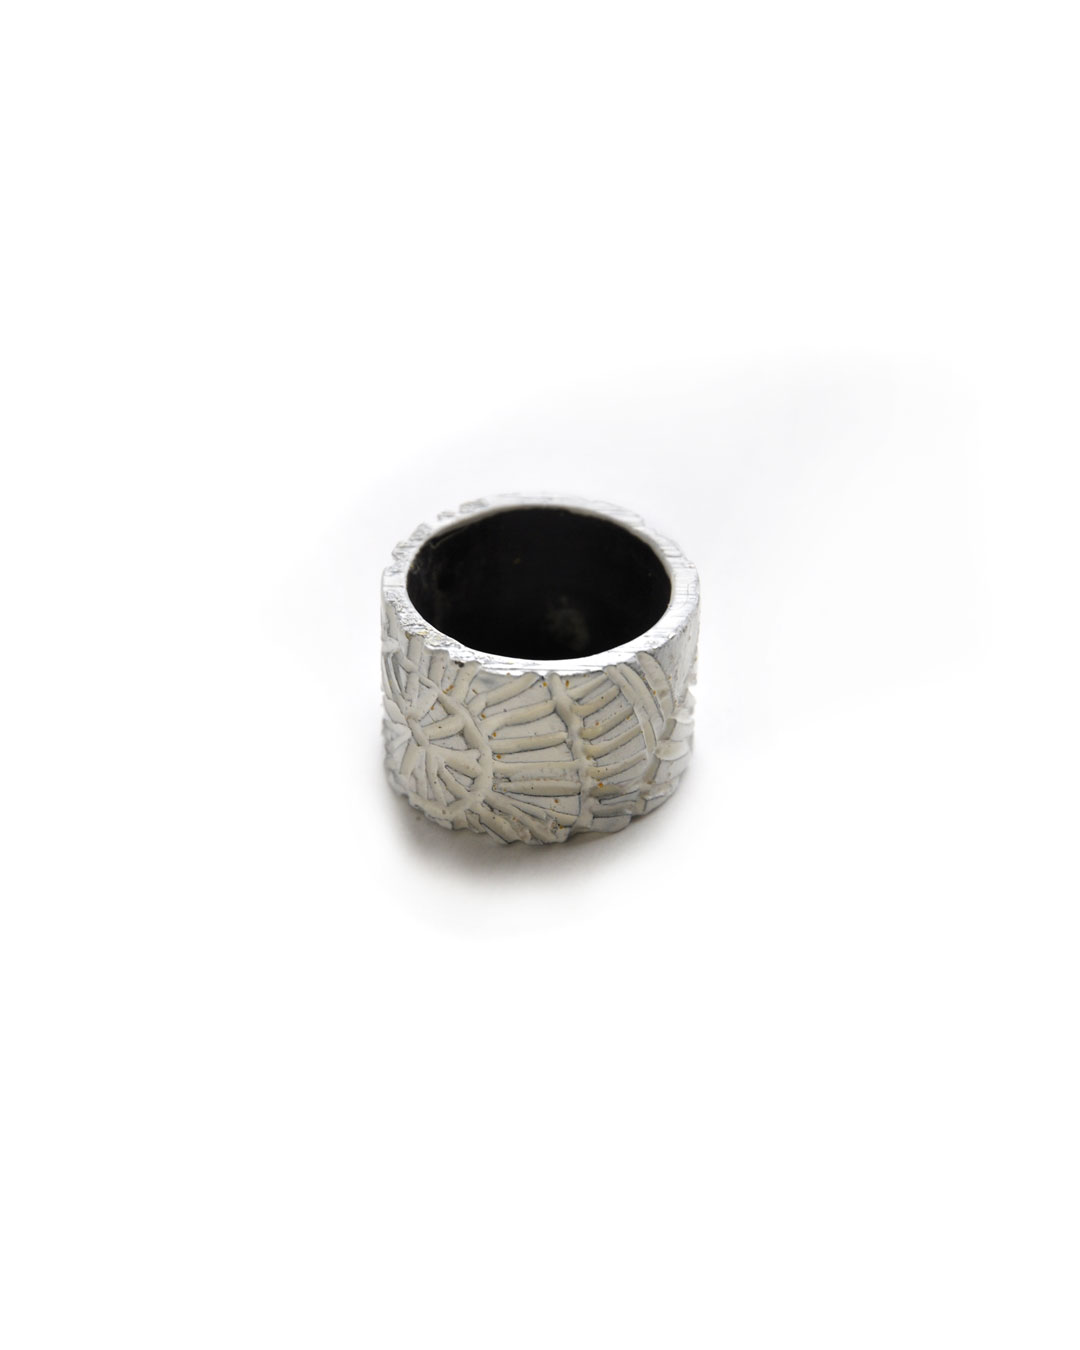 Willemijn de Greef, Under Cover, 2010, ring; silver, enamel, paint, 22 x 7mm, €110